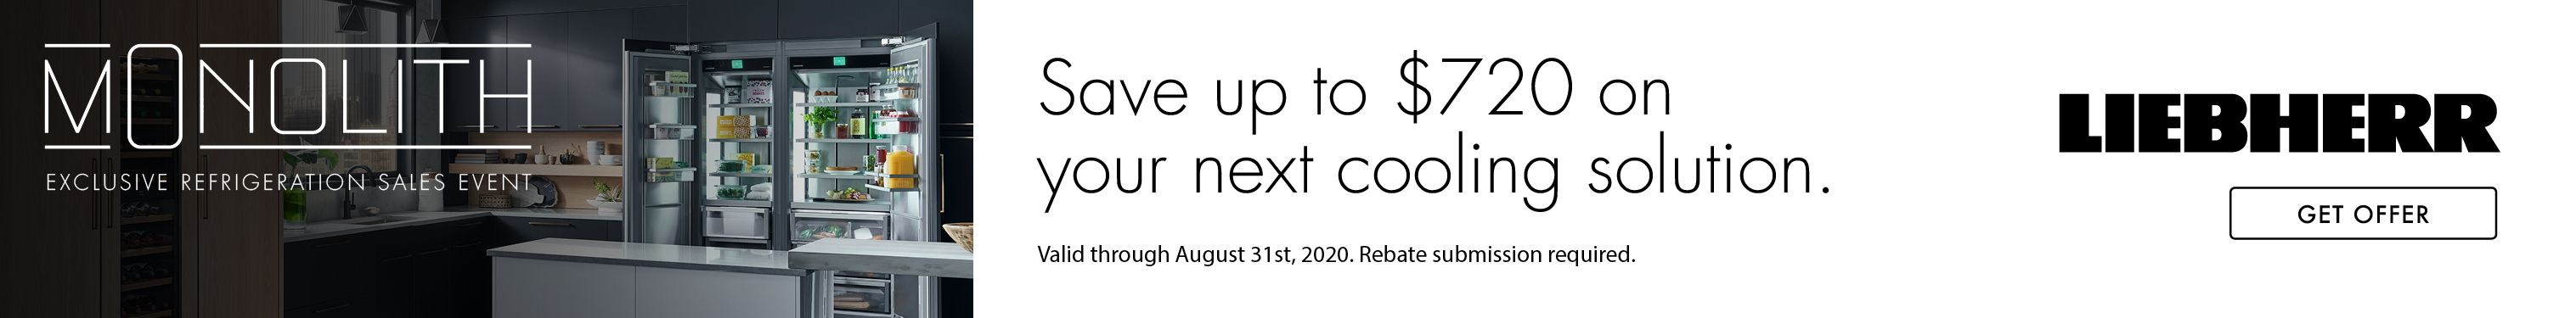 Liebherr - Save up to $720 on your next cooling solution.